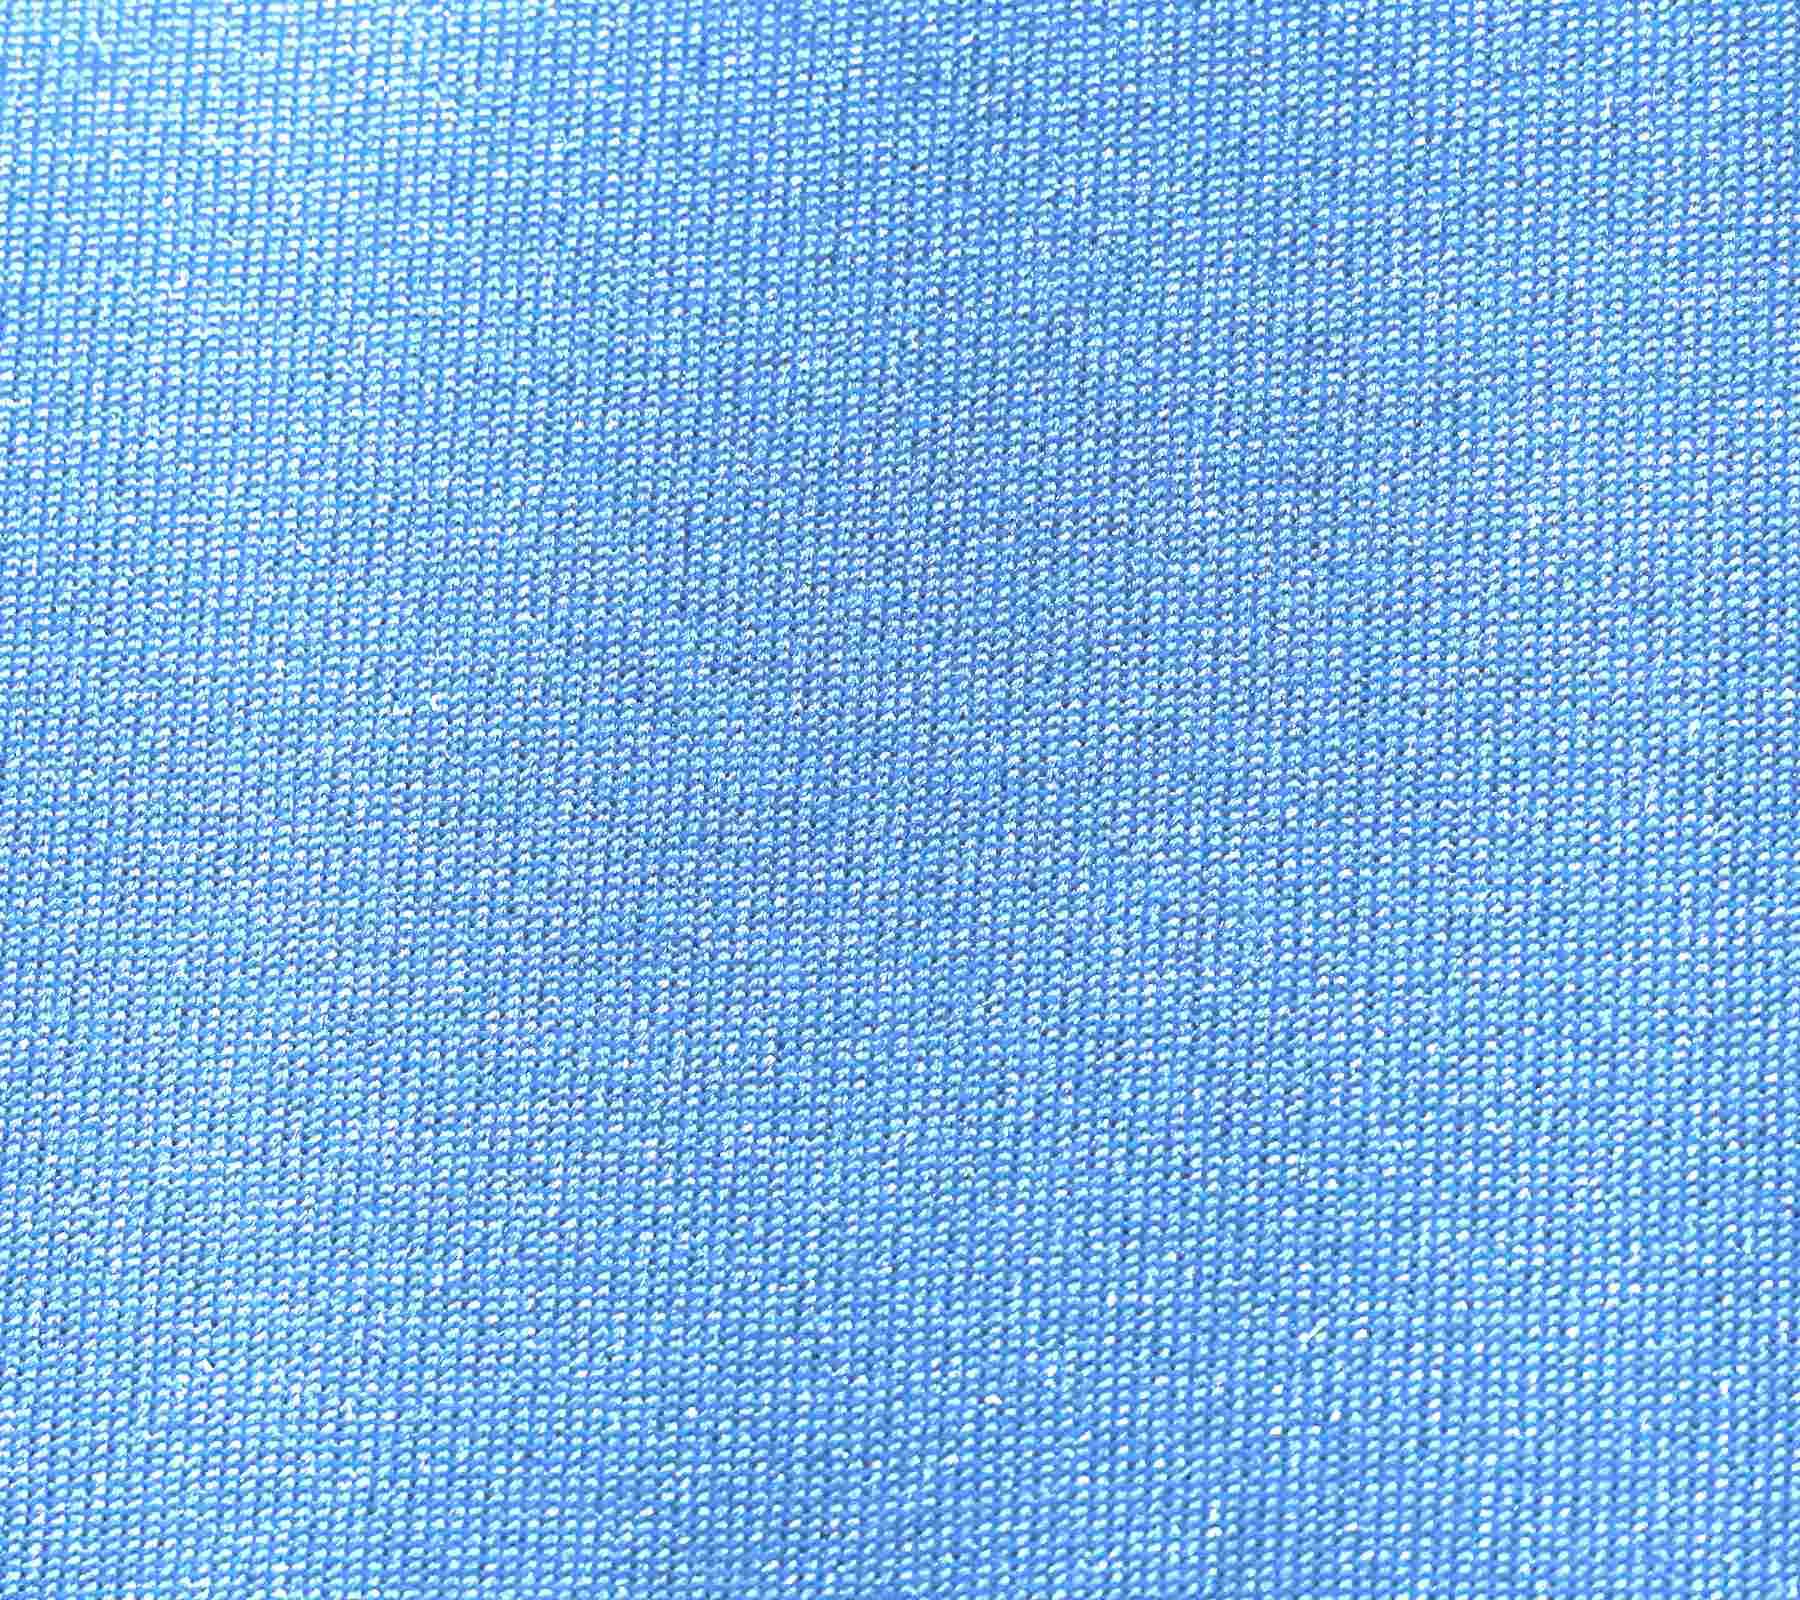 Baby blue woven nylon fabric background image wallpaper - Light blue linen wallpaper ...